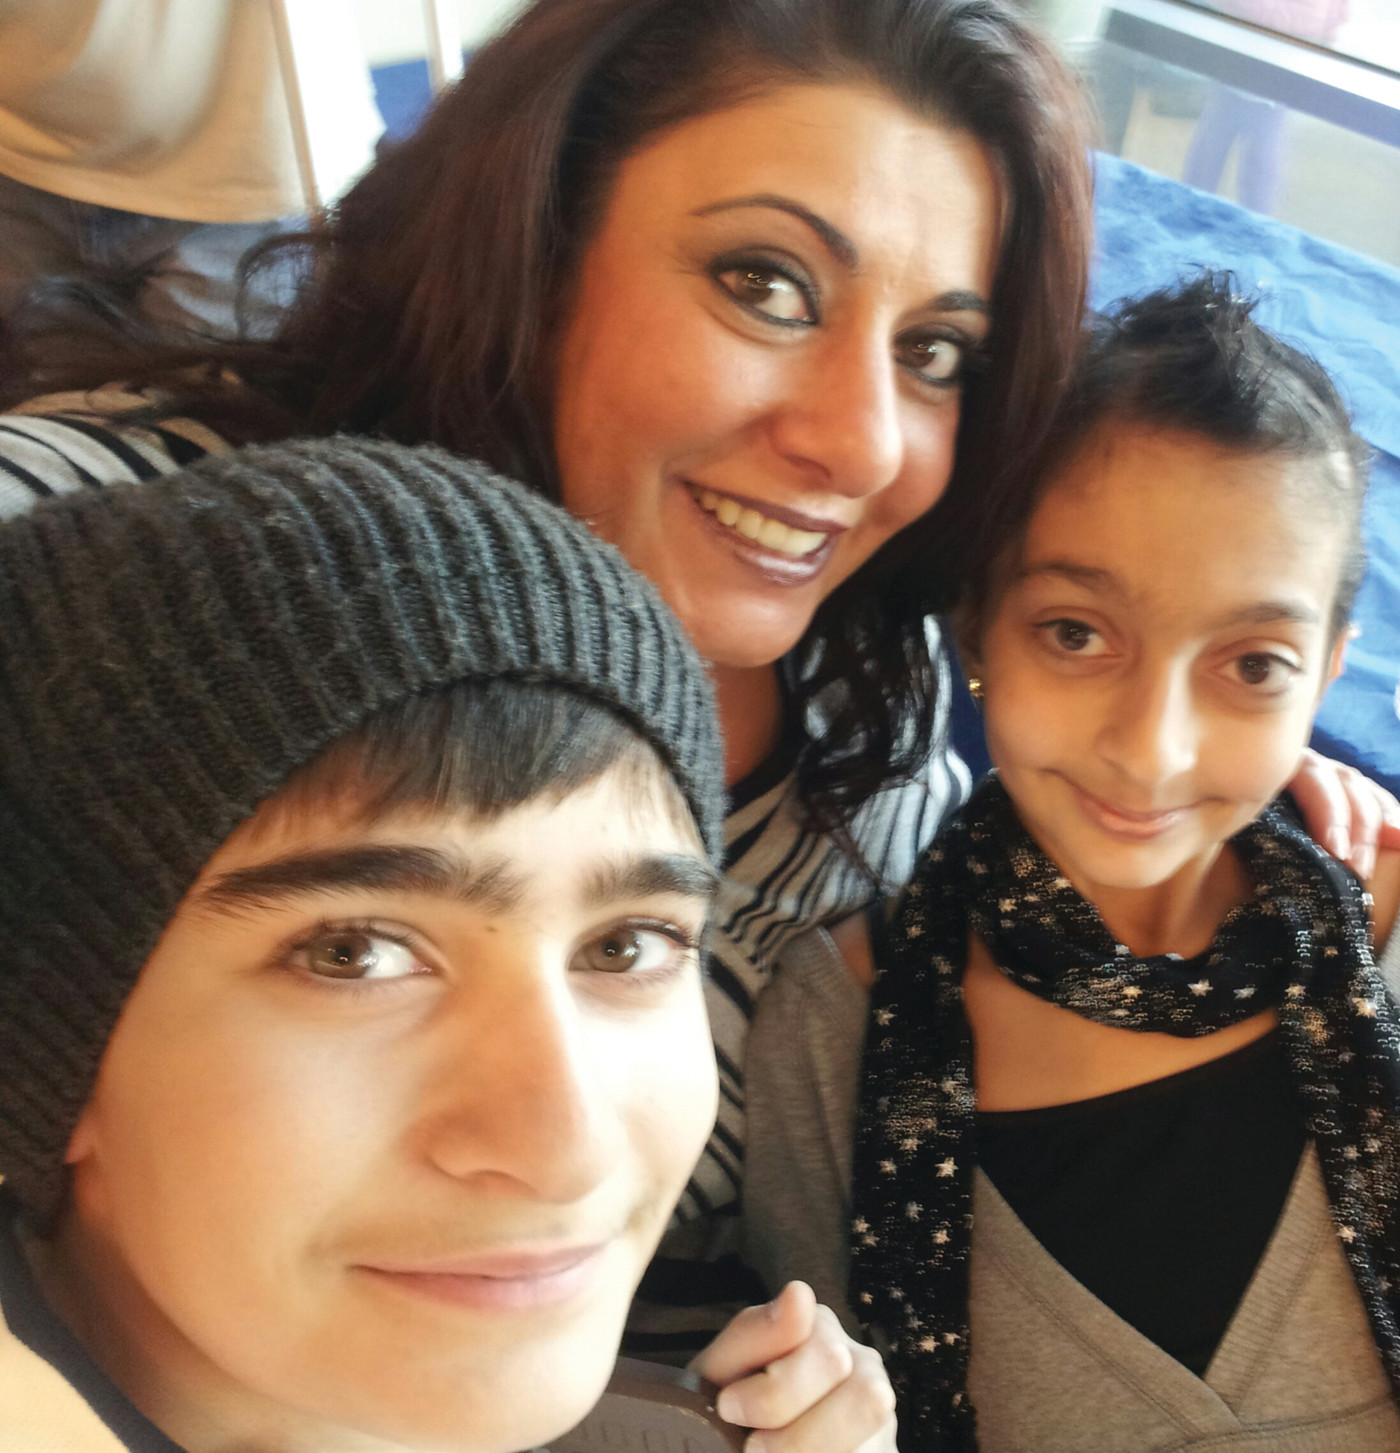 FAMILY LOVE: Ani, her mom Deanna, and her brother Hagop are all smiles as she continues to stay healthy.